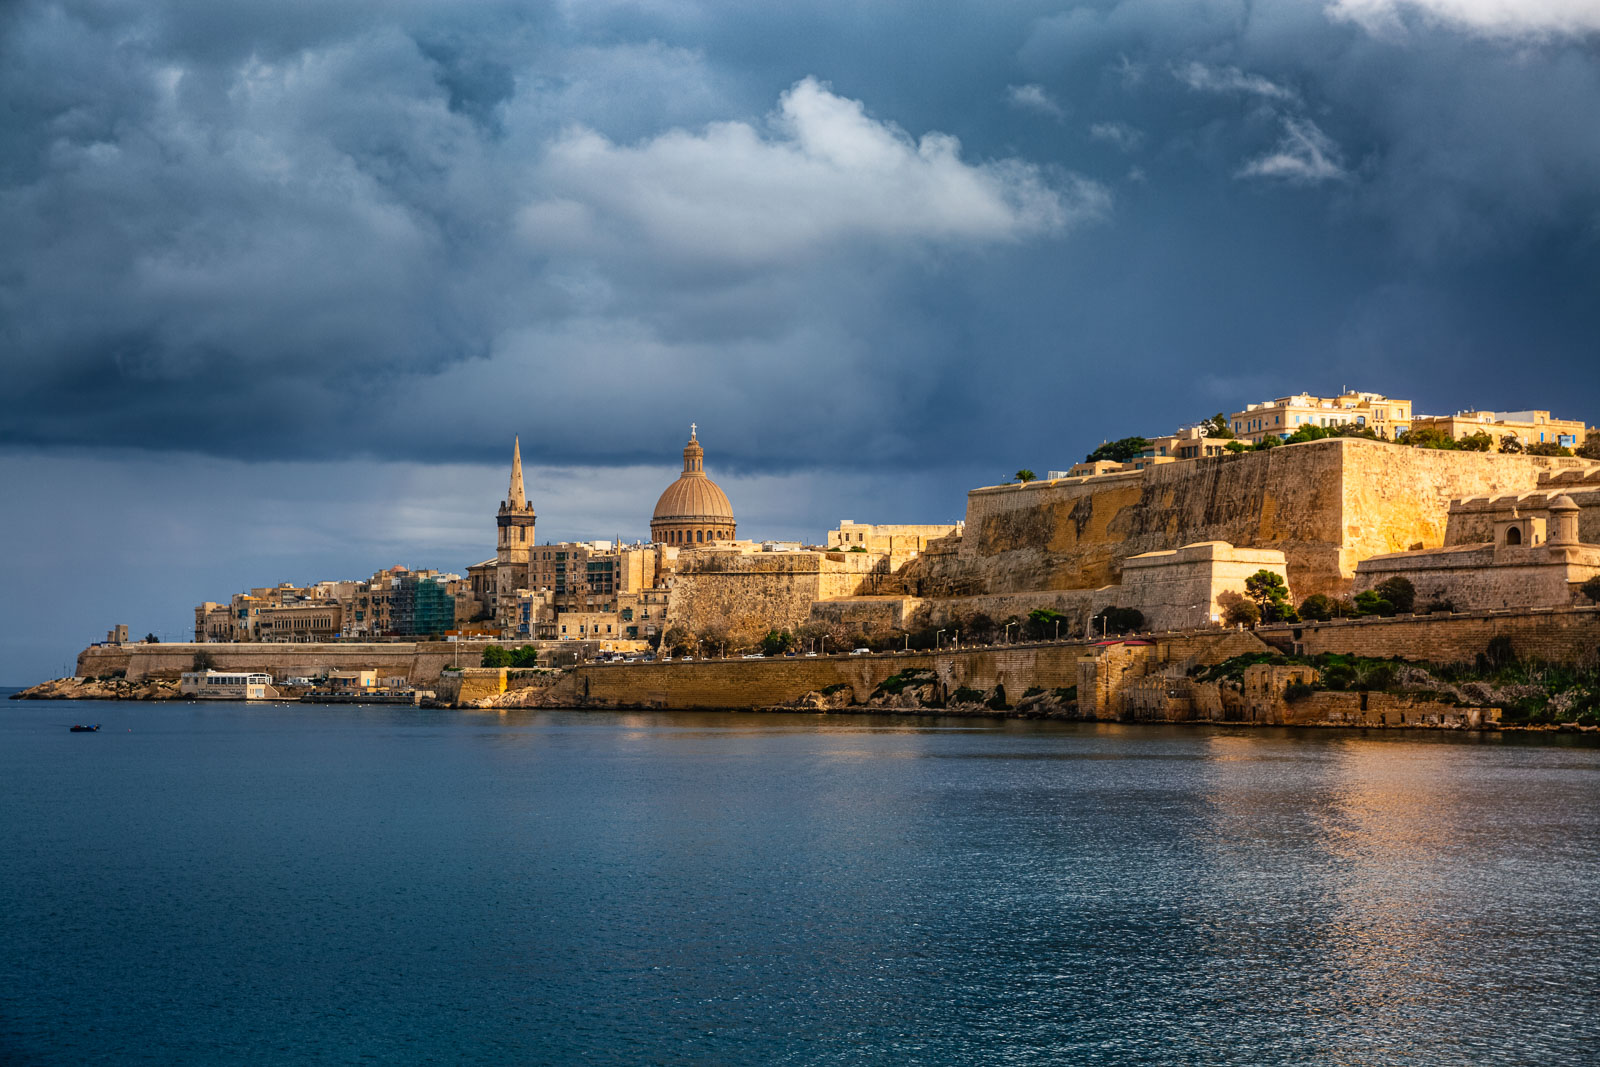 Malta, 21.11.2020,